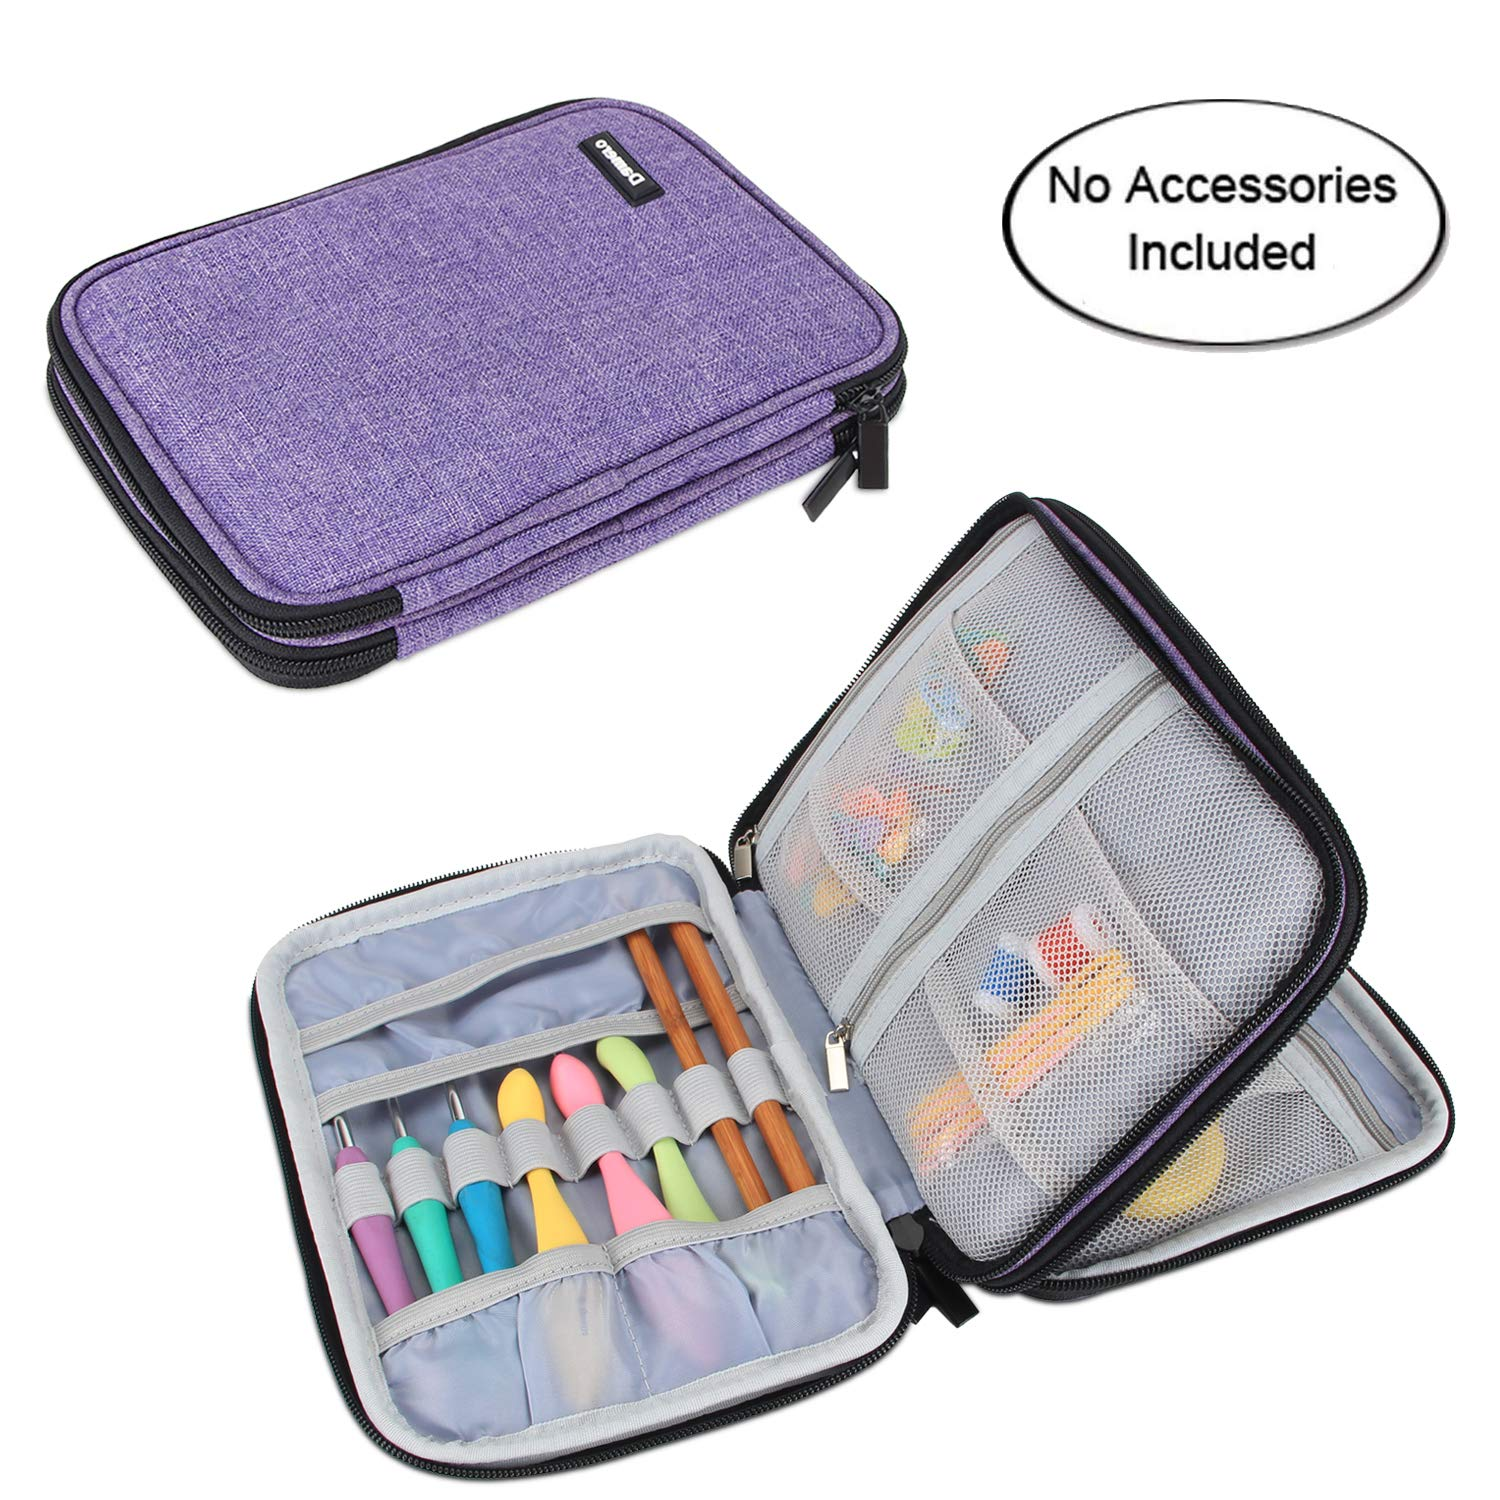 Damero Crochet Hook Case, Travel Storage Bag for Swing Crochet Hooks, Lighted Hooks, Needles(Up to 8'') and Accessories, Large, Purple (No Accessories Included)